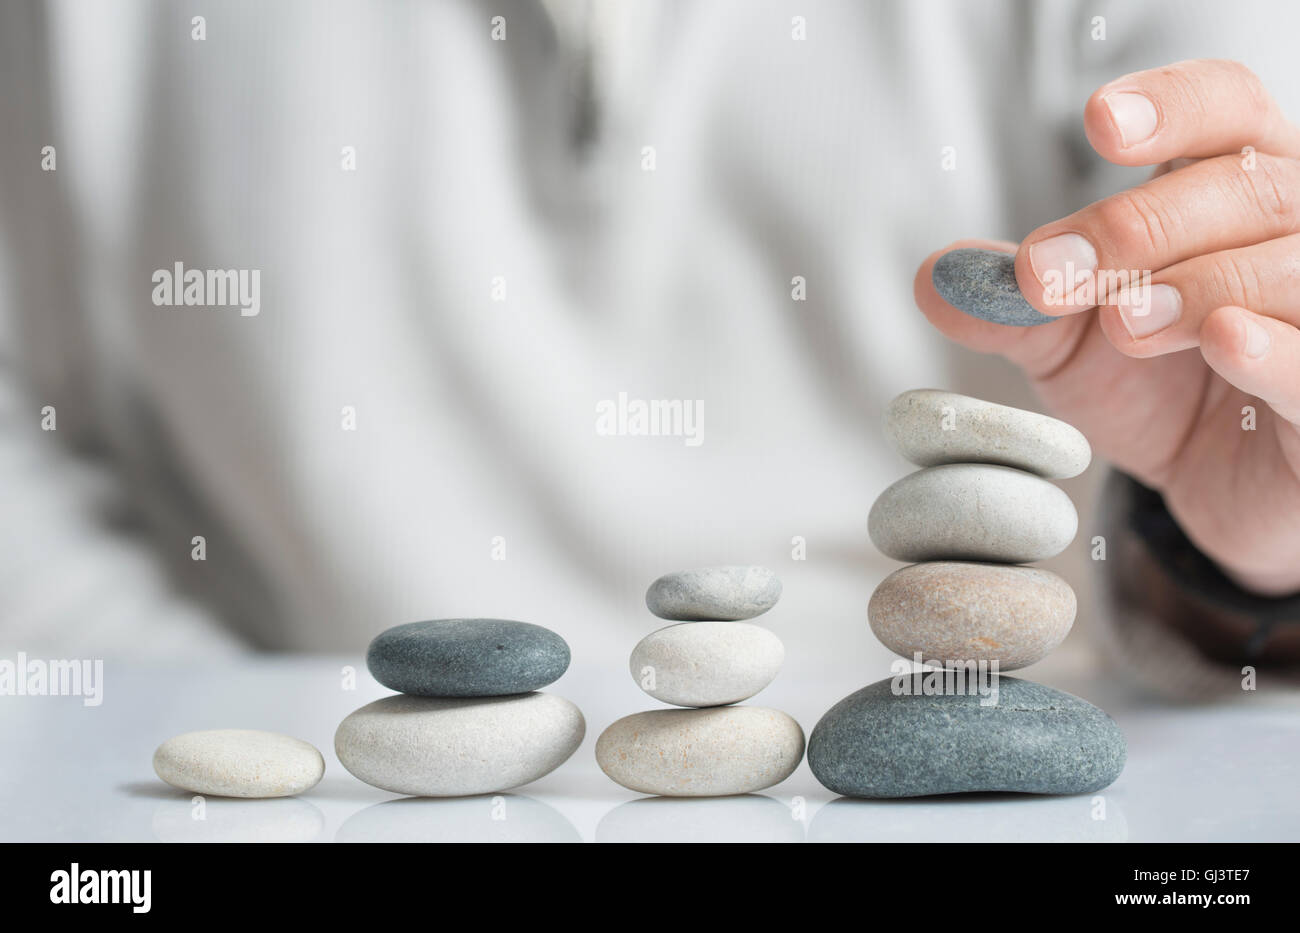 Horizontal image of a man stacking pebbles on a table with copyspace for text. Concept of risk management and wealth. - Stock Image